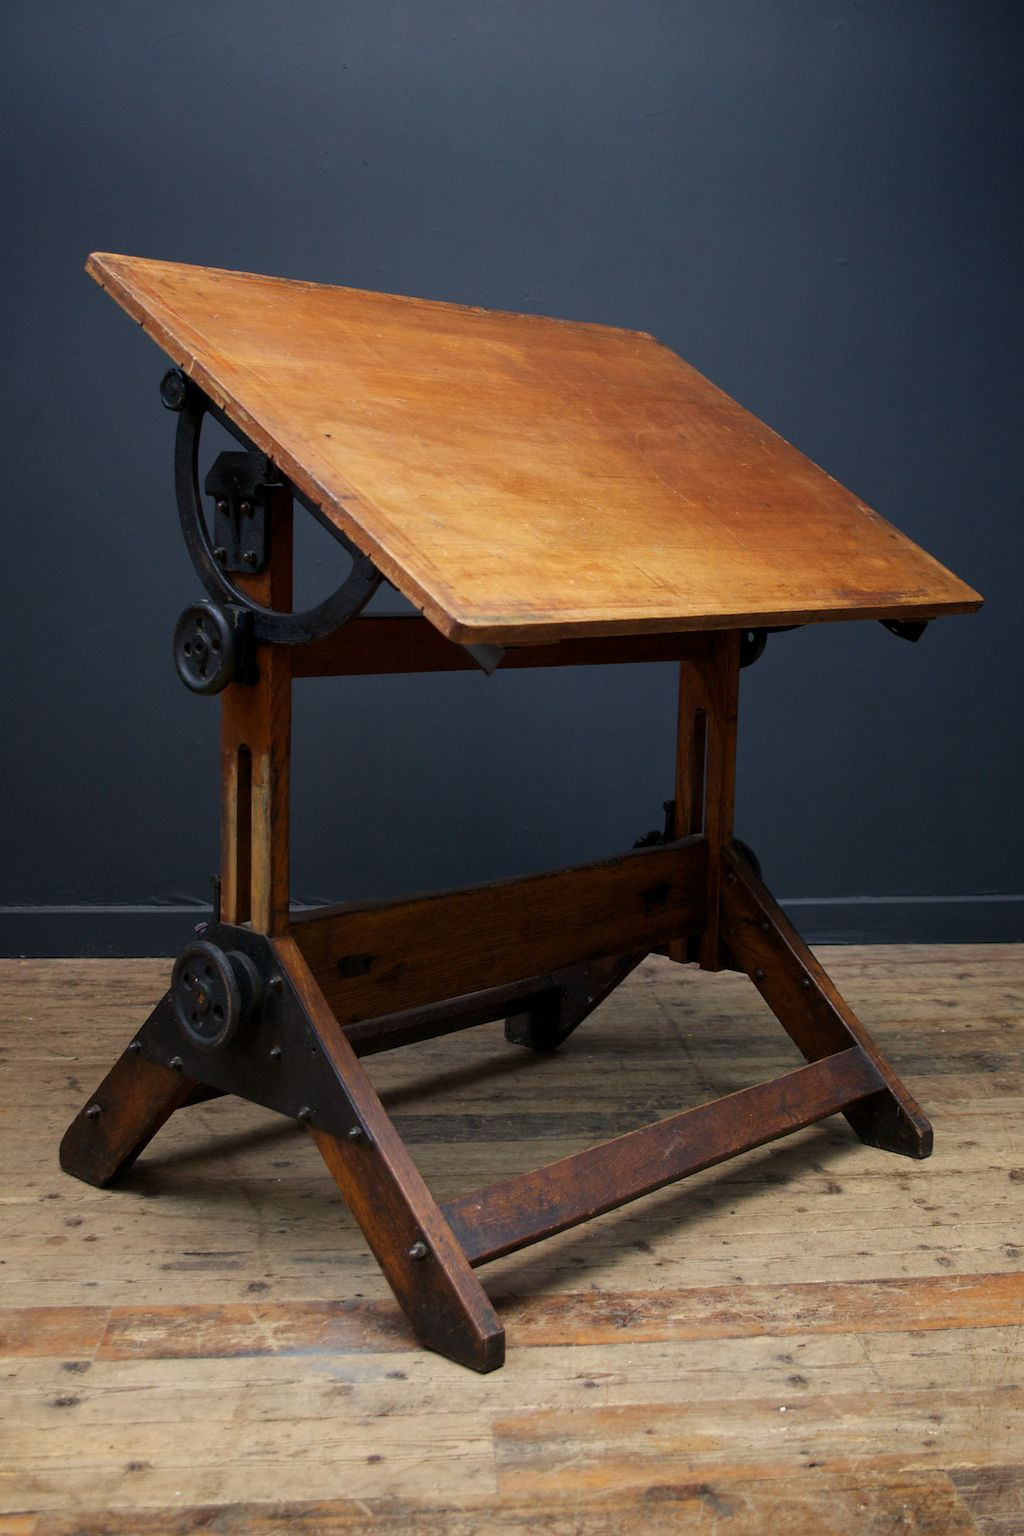 Original 19c Architects Desk In As Found Condition From Drew